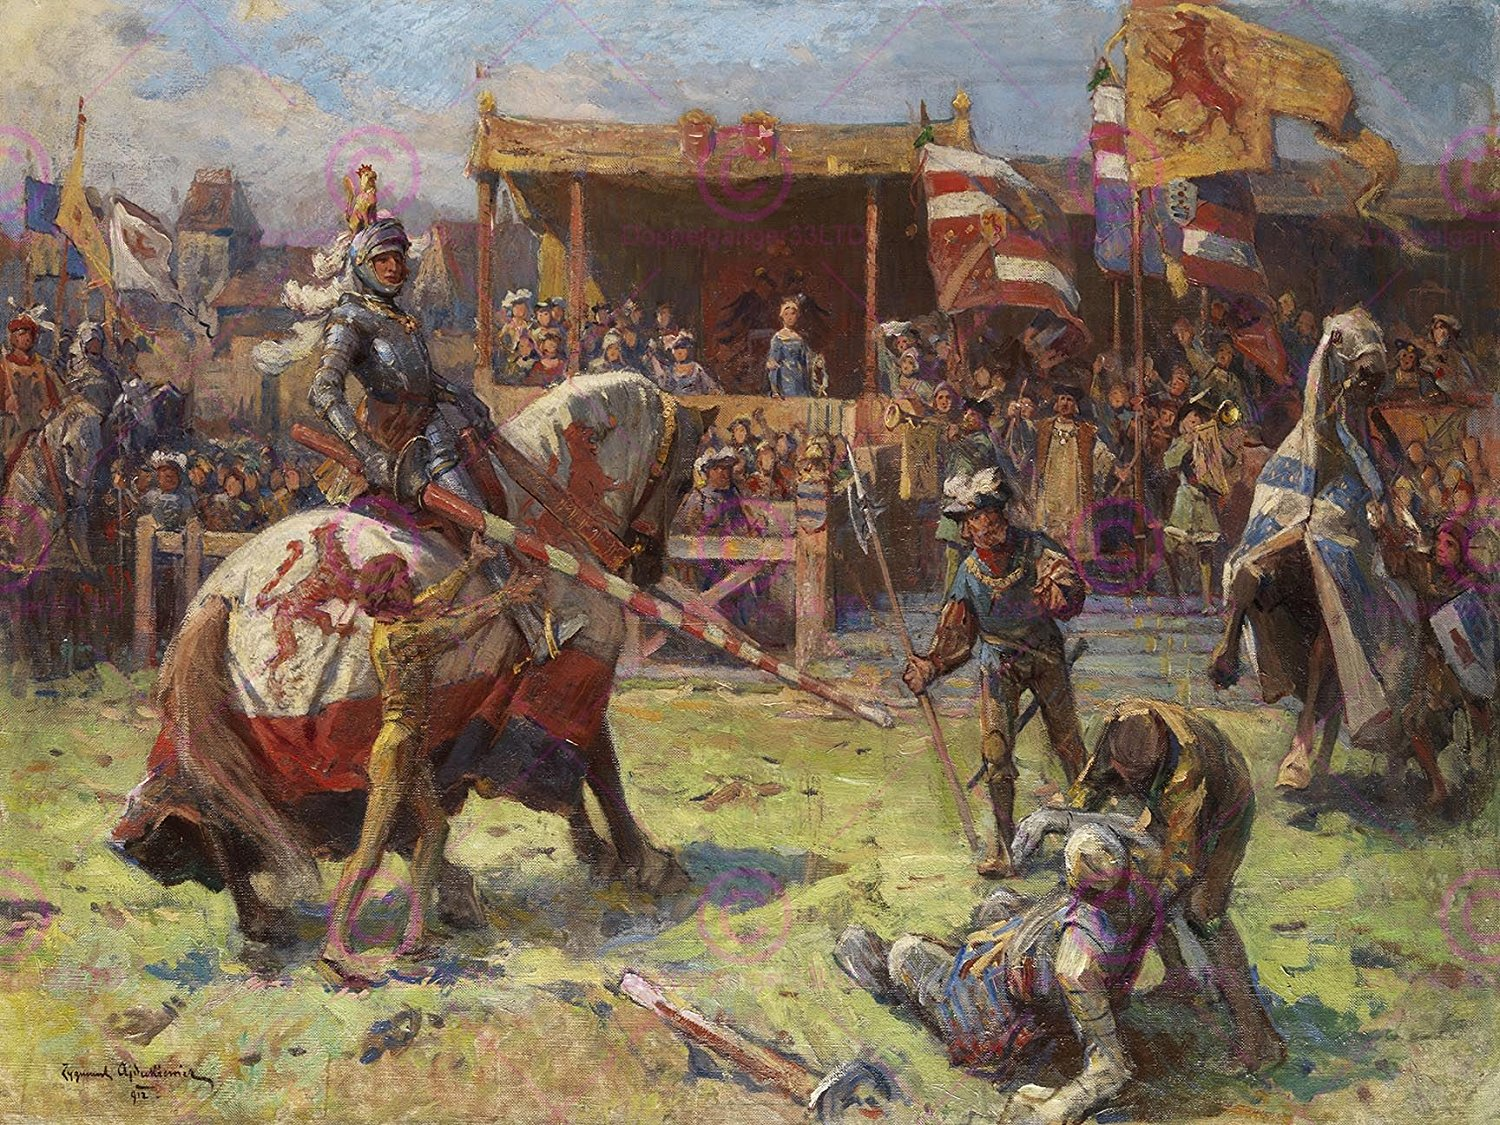 Buy PAINTING LANDSCAPE MEDIEVAL AJDUKIEWICZ JOUSTING ART PRINT POSTER LF577 by Large Posters in Cheap Price on Alibaba.com